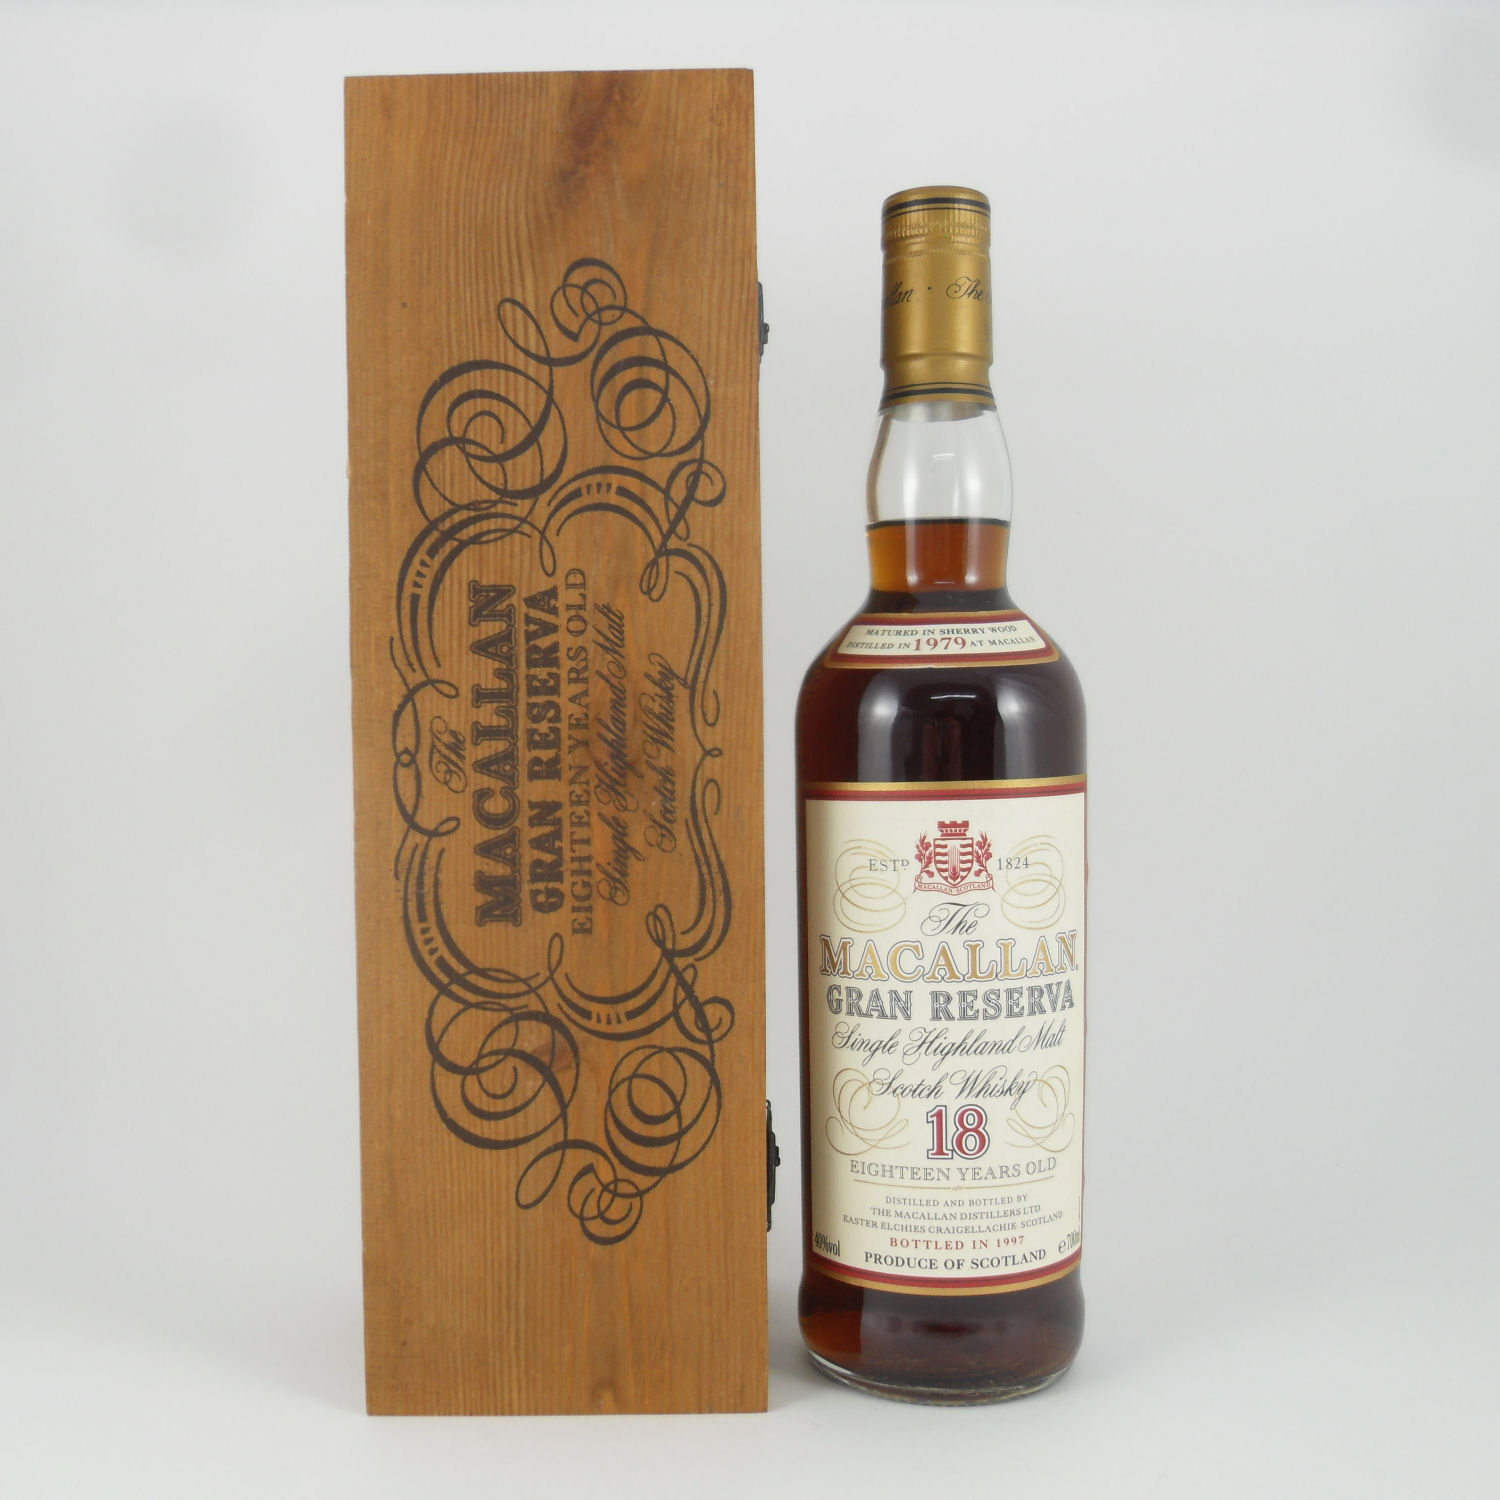 Macallan Scotch Whisky